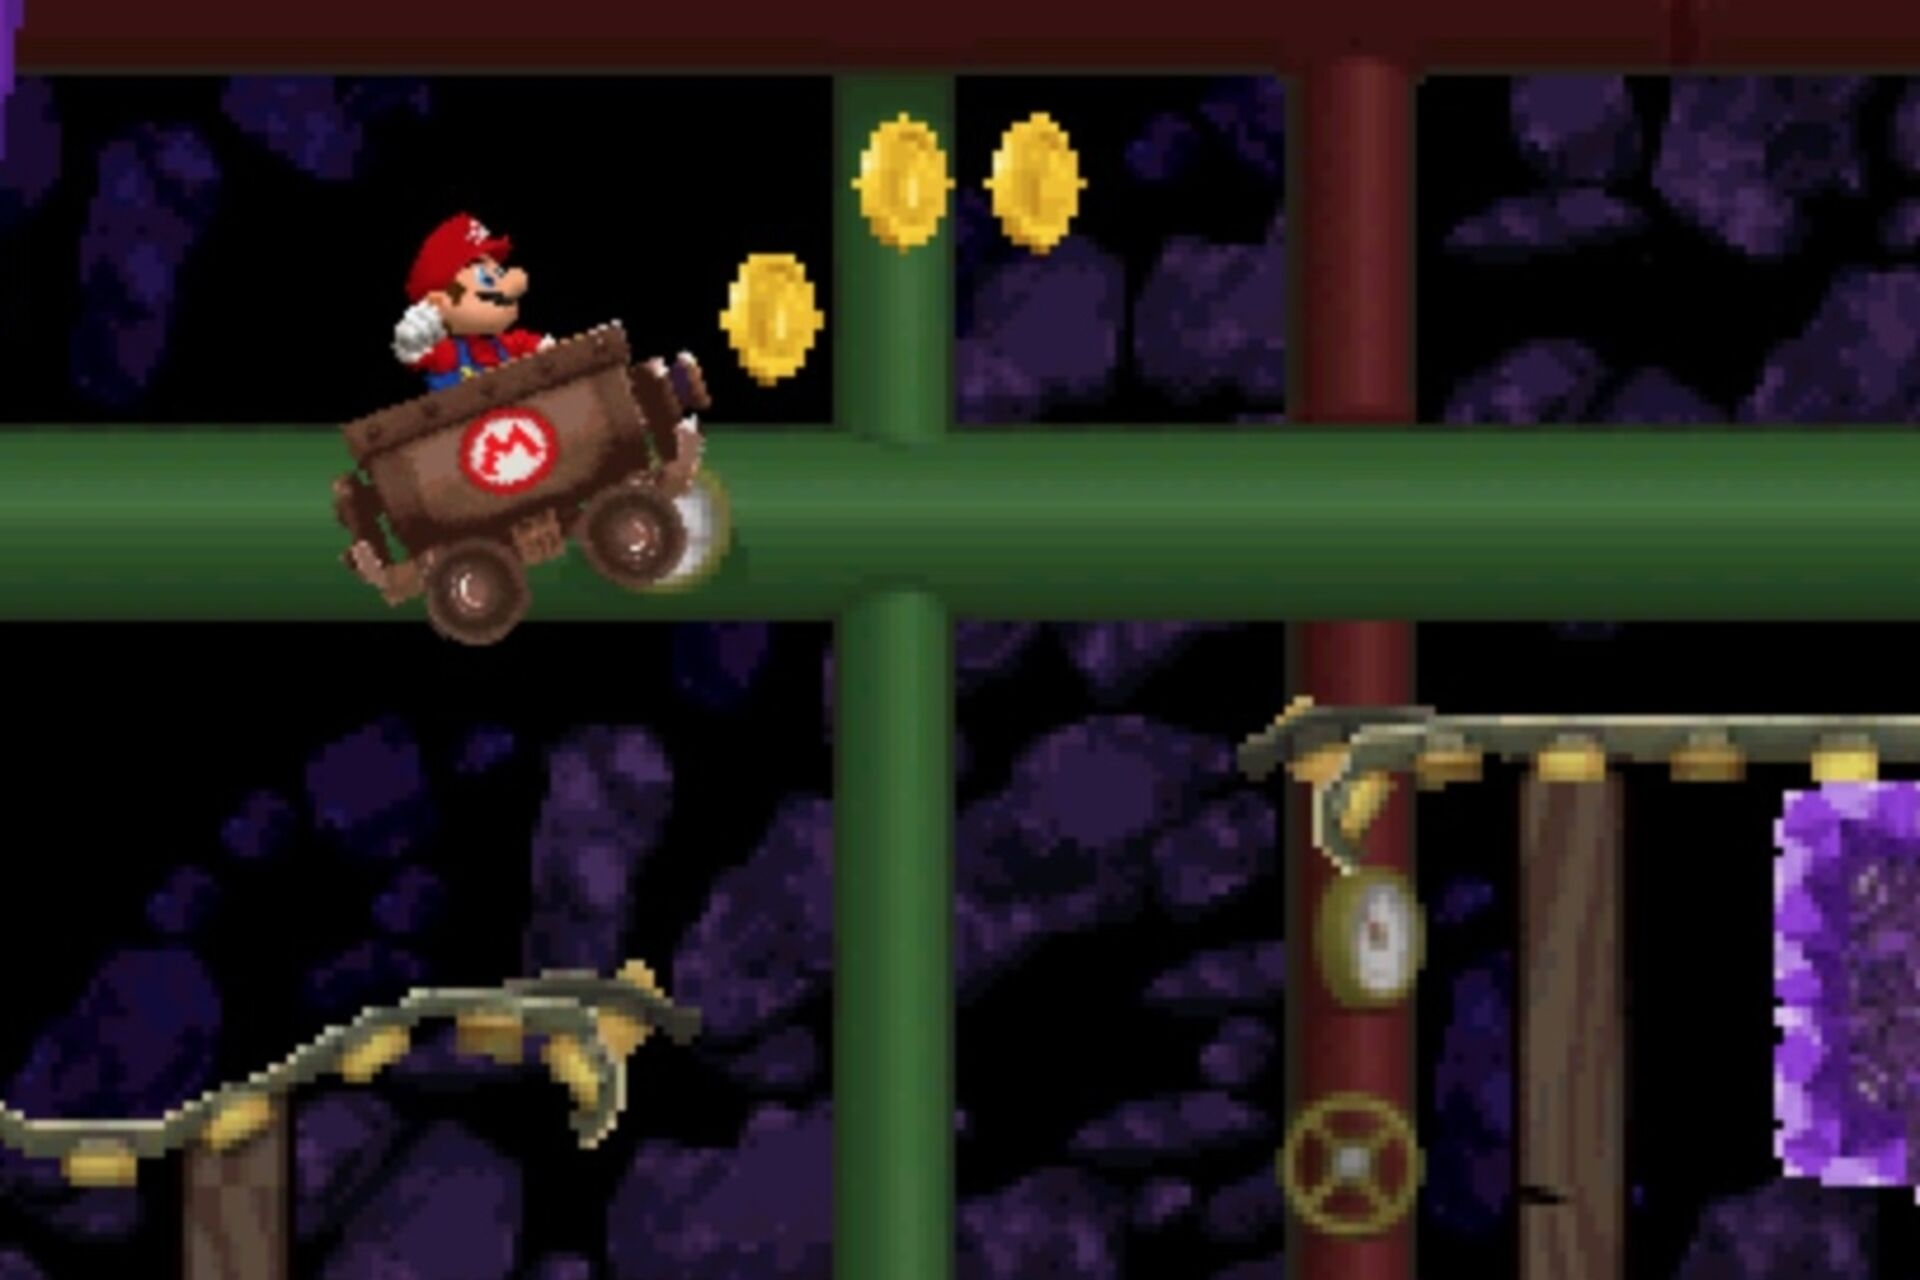 Fans have created a full 80-level sequel to New Super Mario